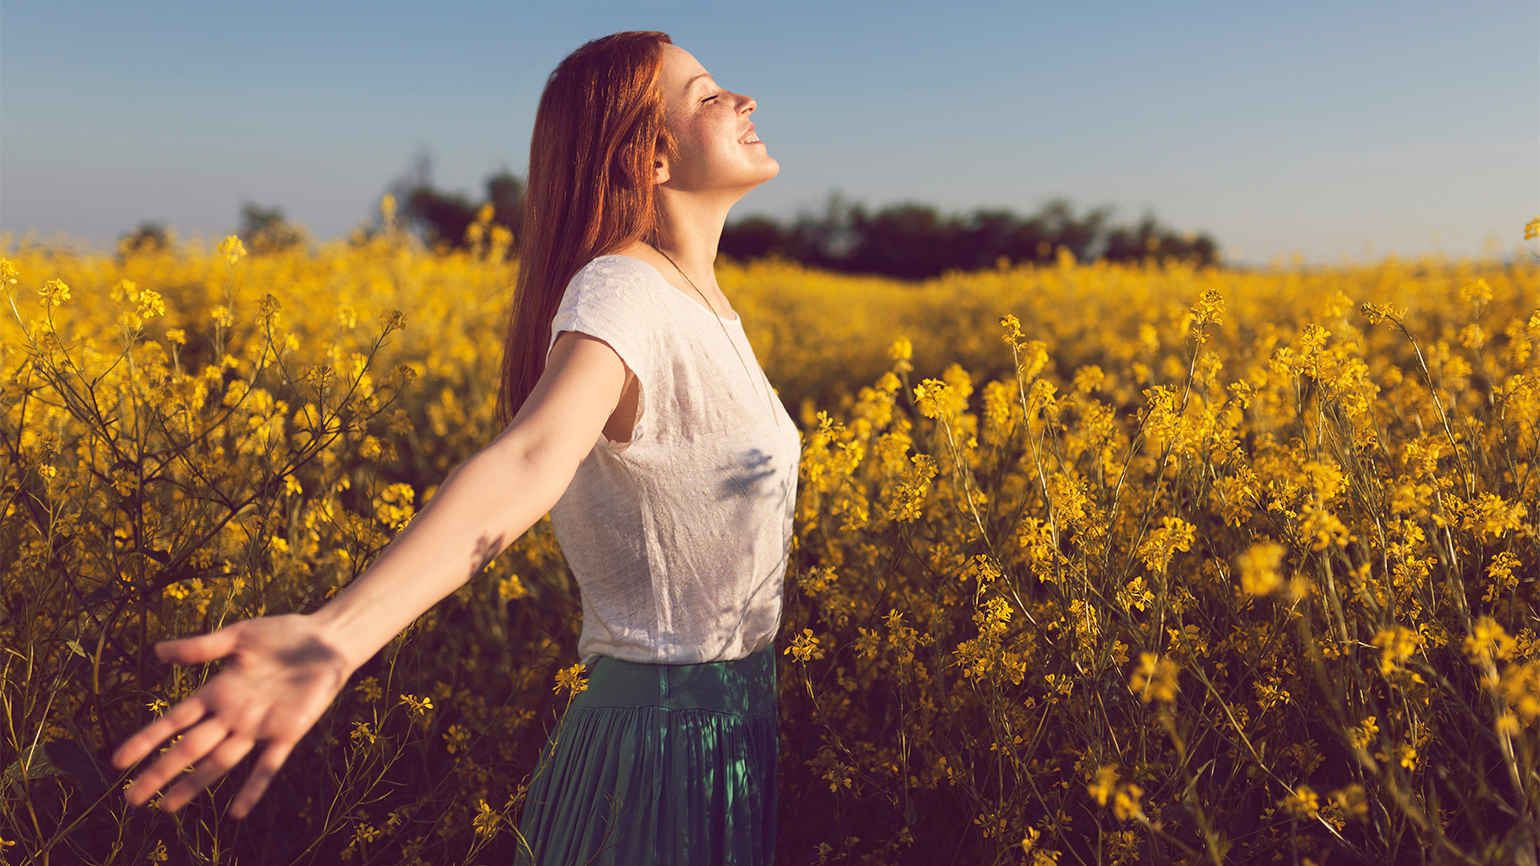 A woman stands, arms outstretched, in the sunlight